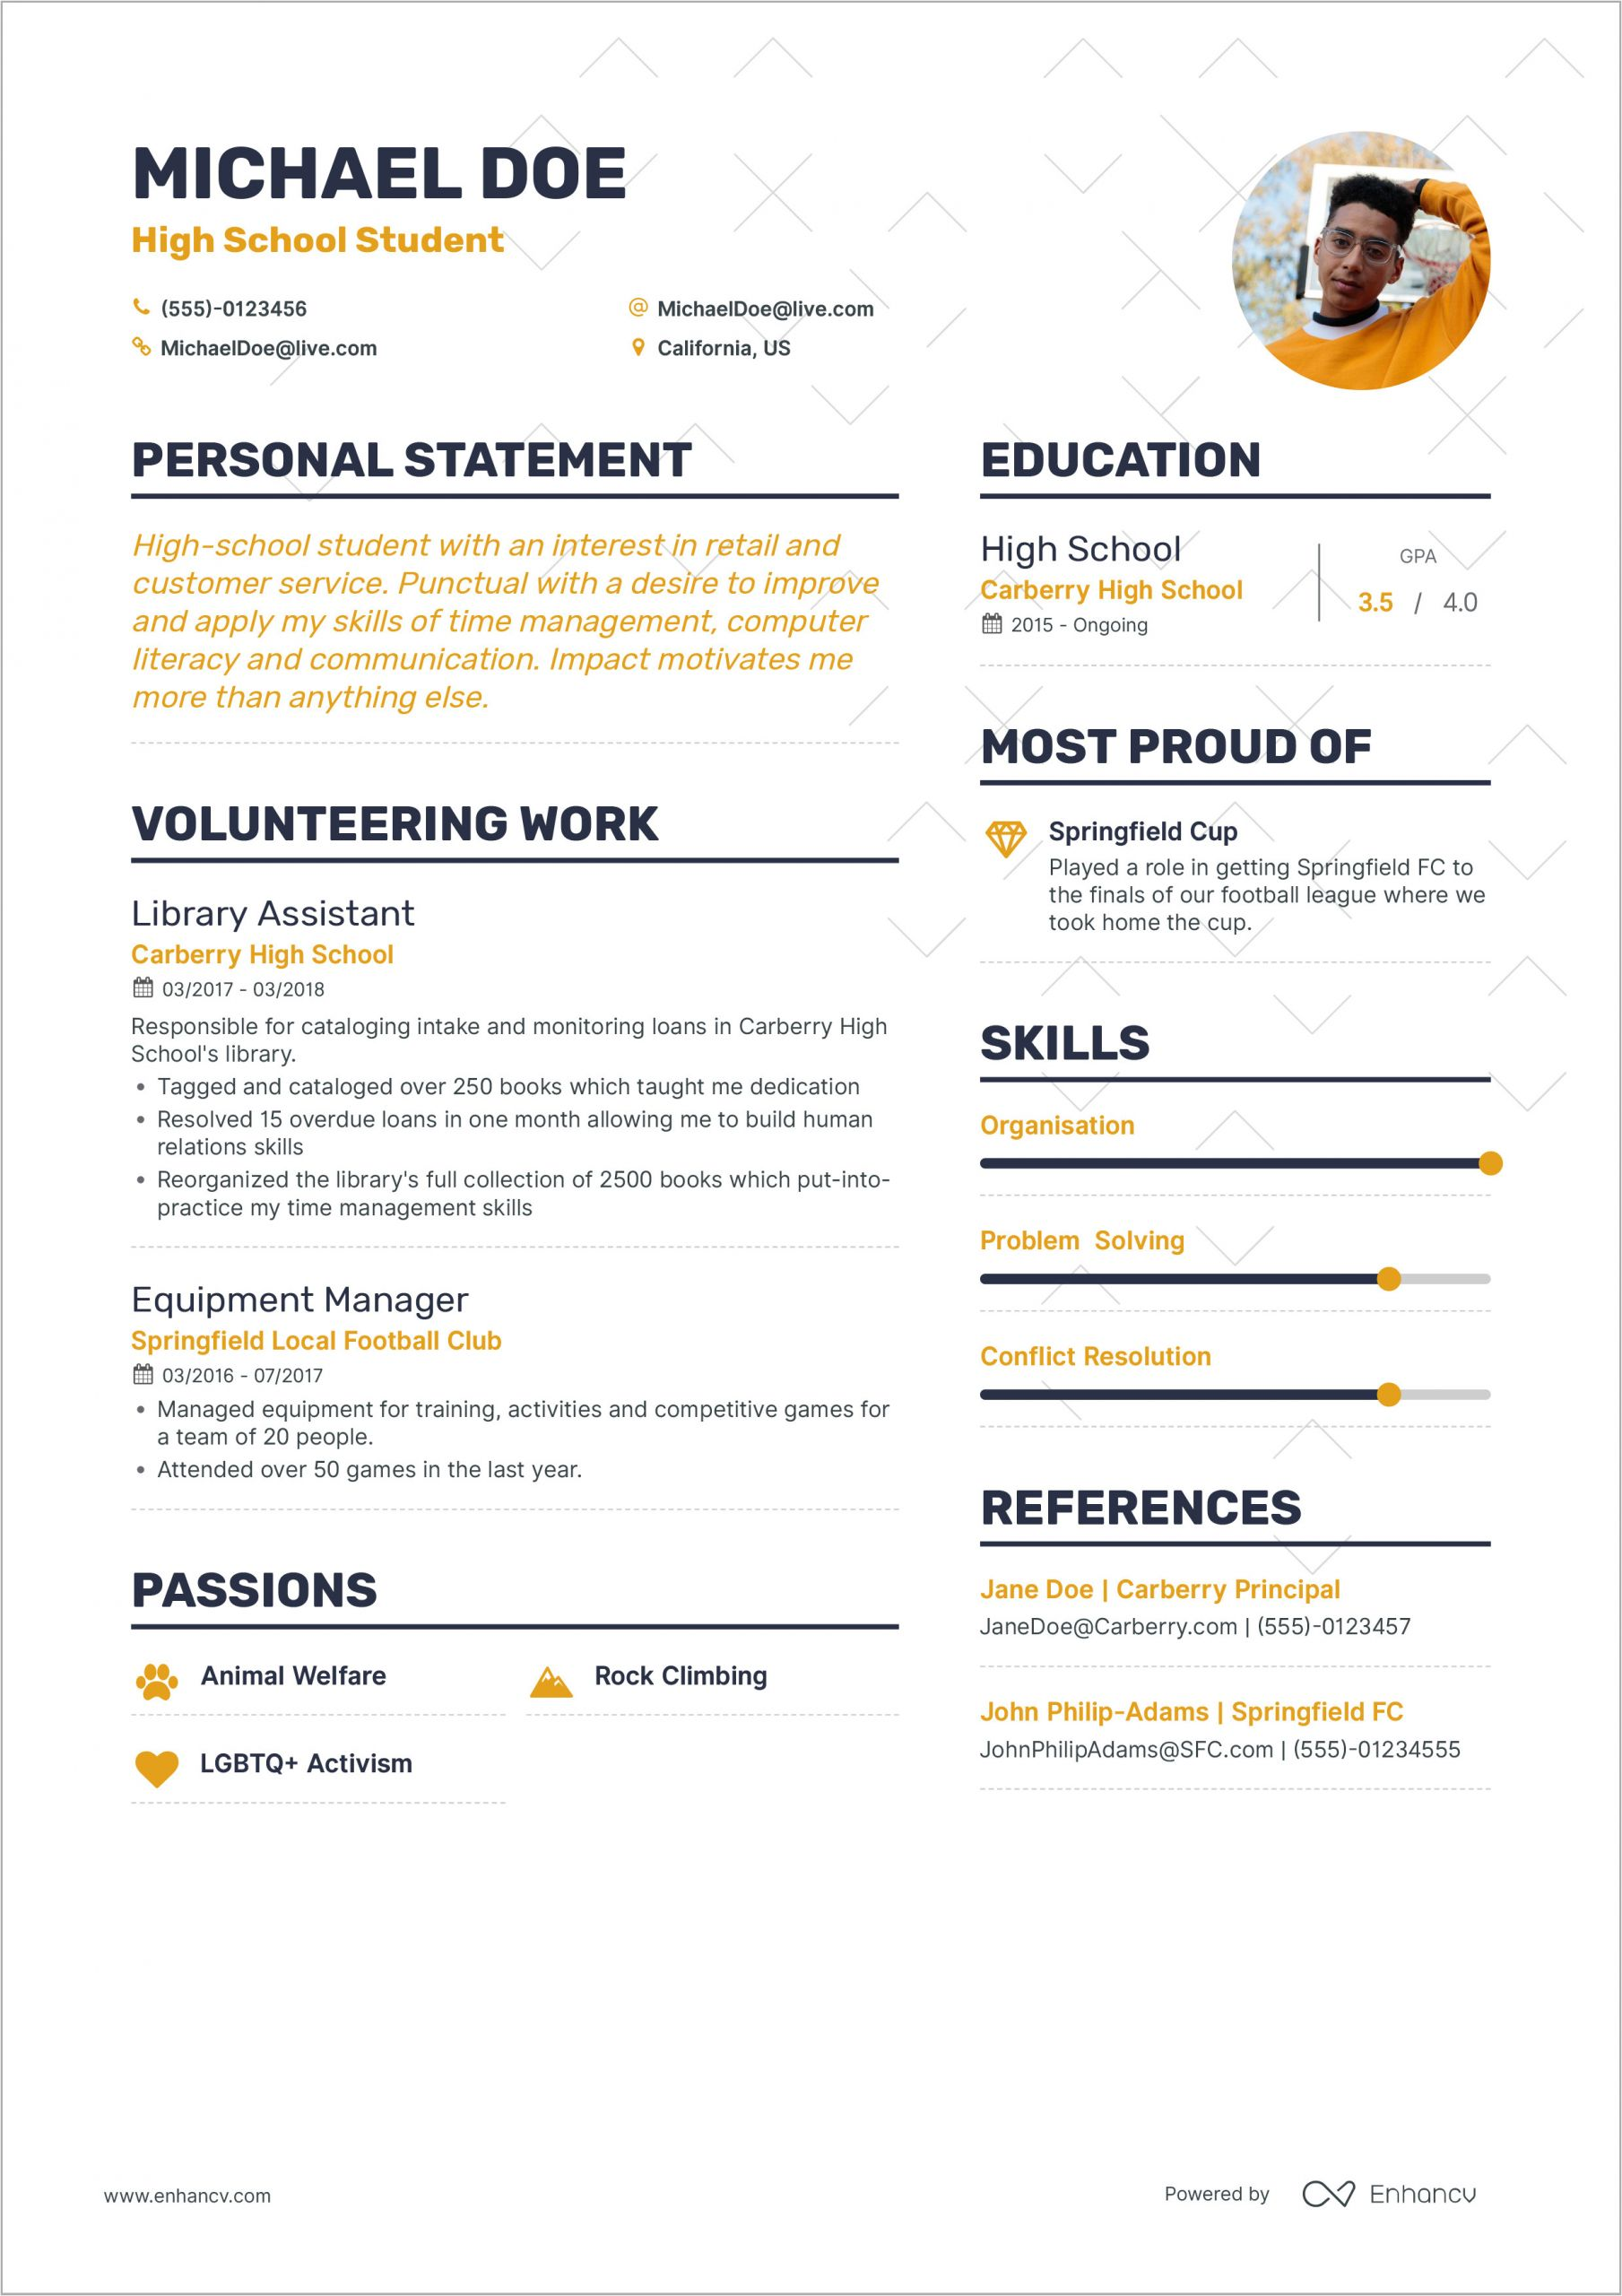 How to format A Resume for Your First Job How to Write Your First Job Resume Guide